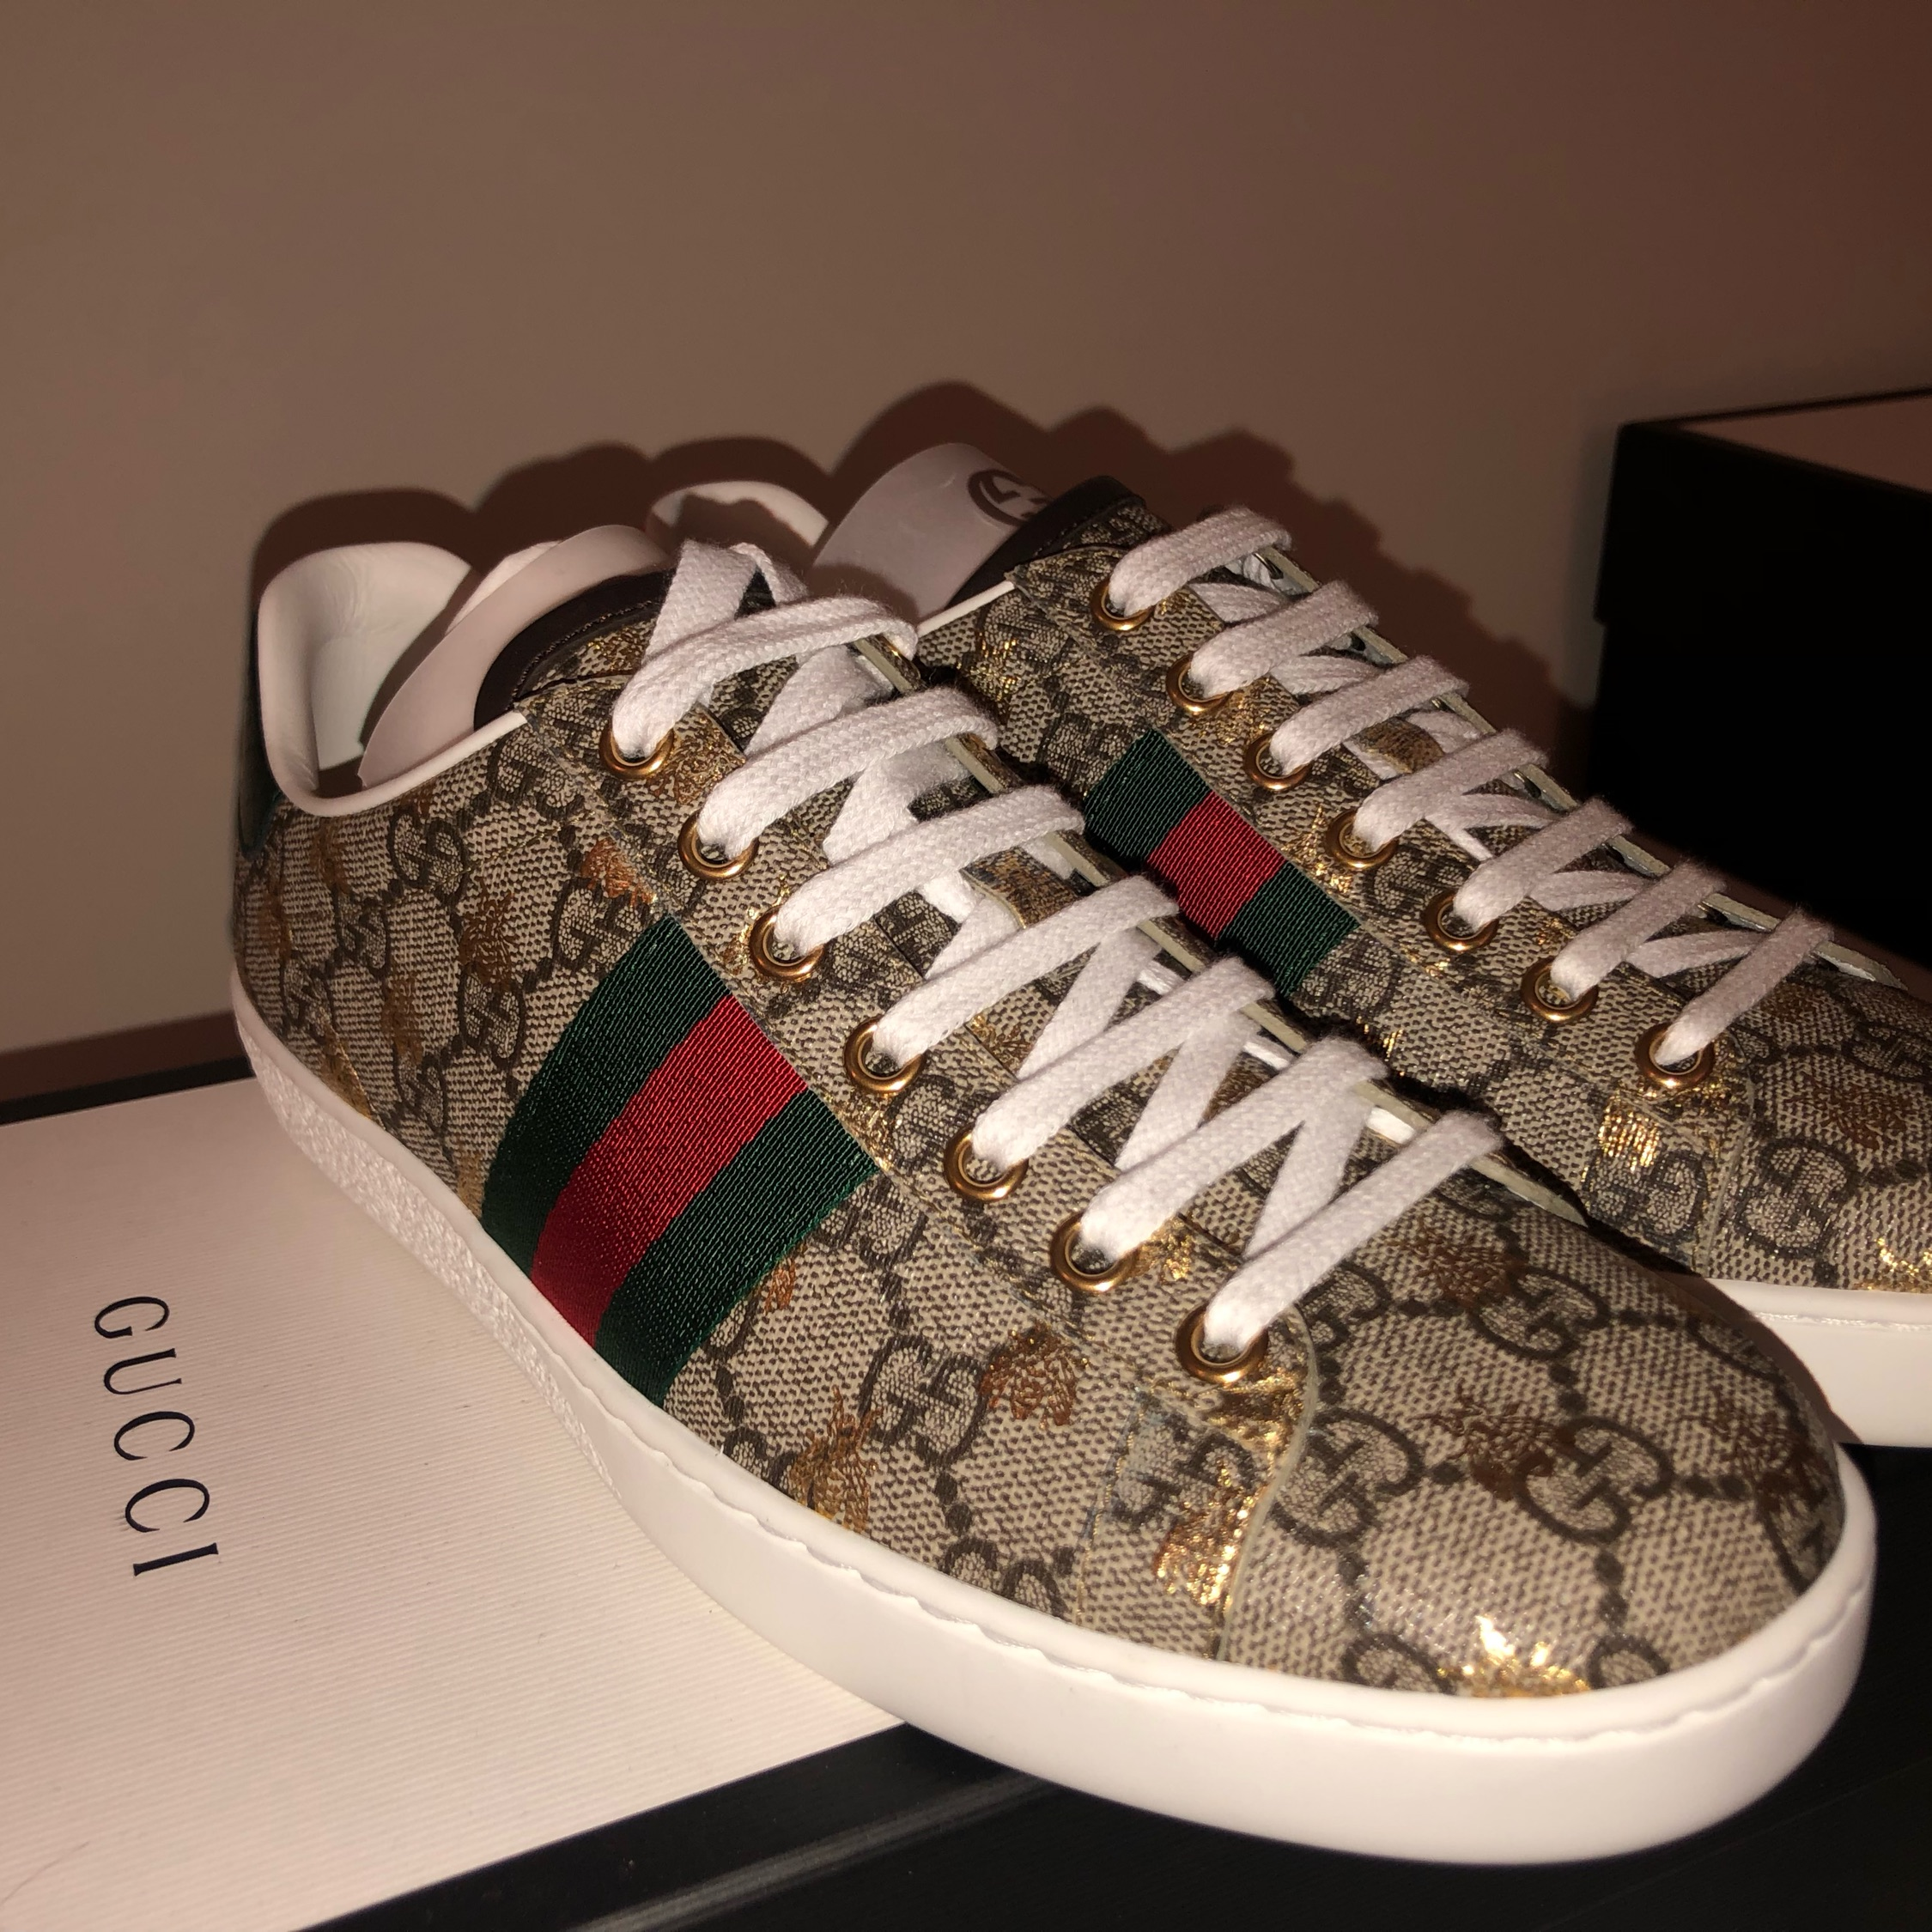 Gucci Ace Bee Sneakers - Size Gucci W37